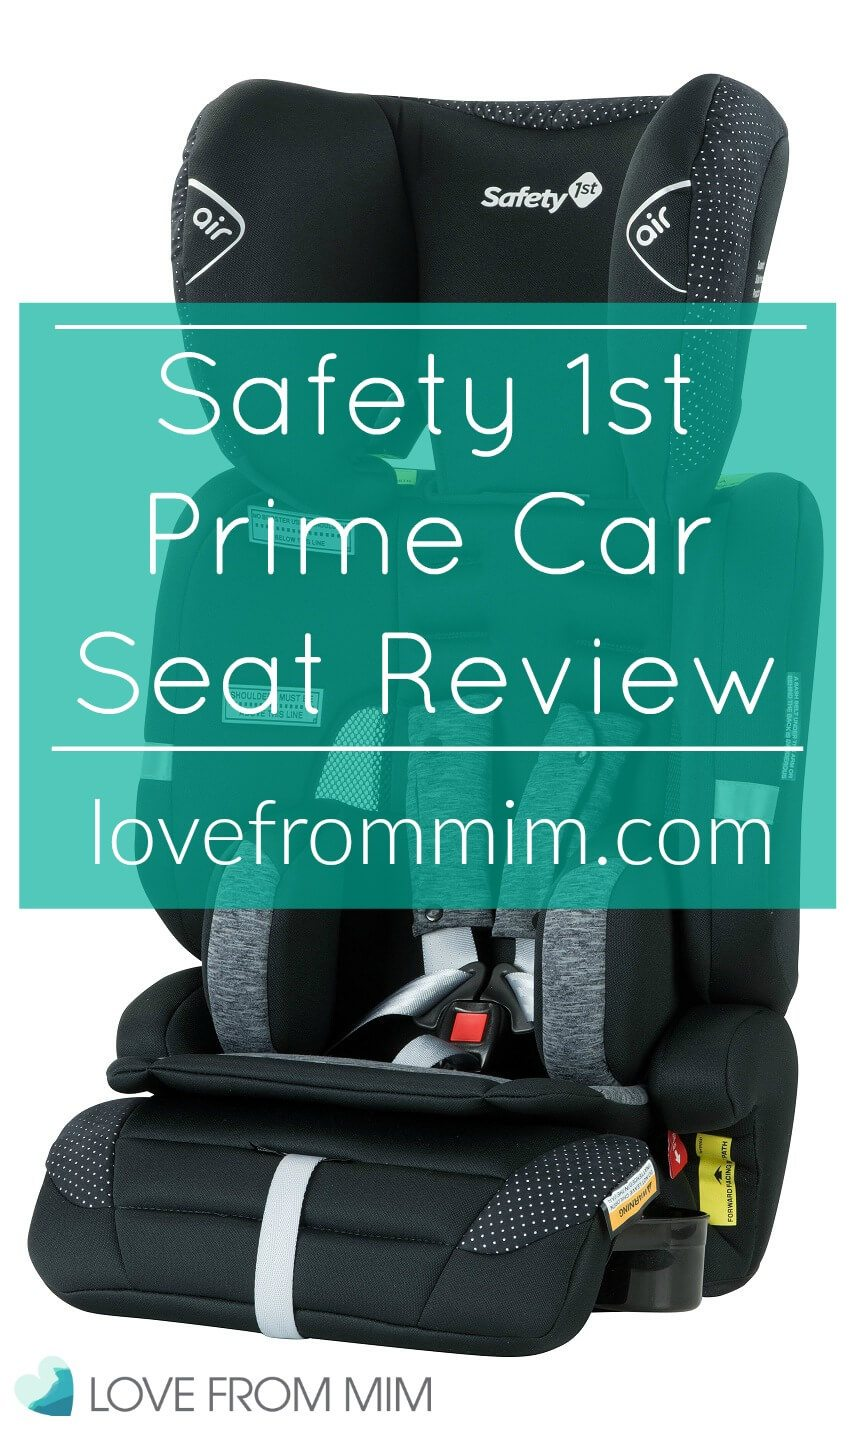 Safety 1st Prime Car Seat, Best Car Seats, Car Seat, Safety 1st Car Seat, Baby Car Seat. Toddler Car Seat, Child Car Seat, Car Seat, Car Seat Safety, Safest Car Seat, Car Seat Reviews, Review, Child Safety, Travel,